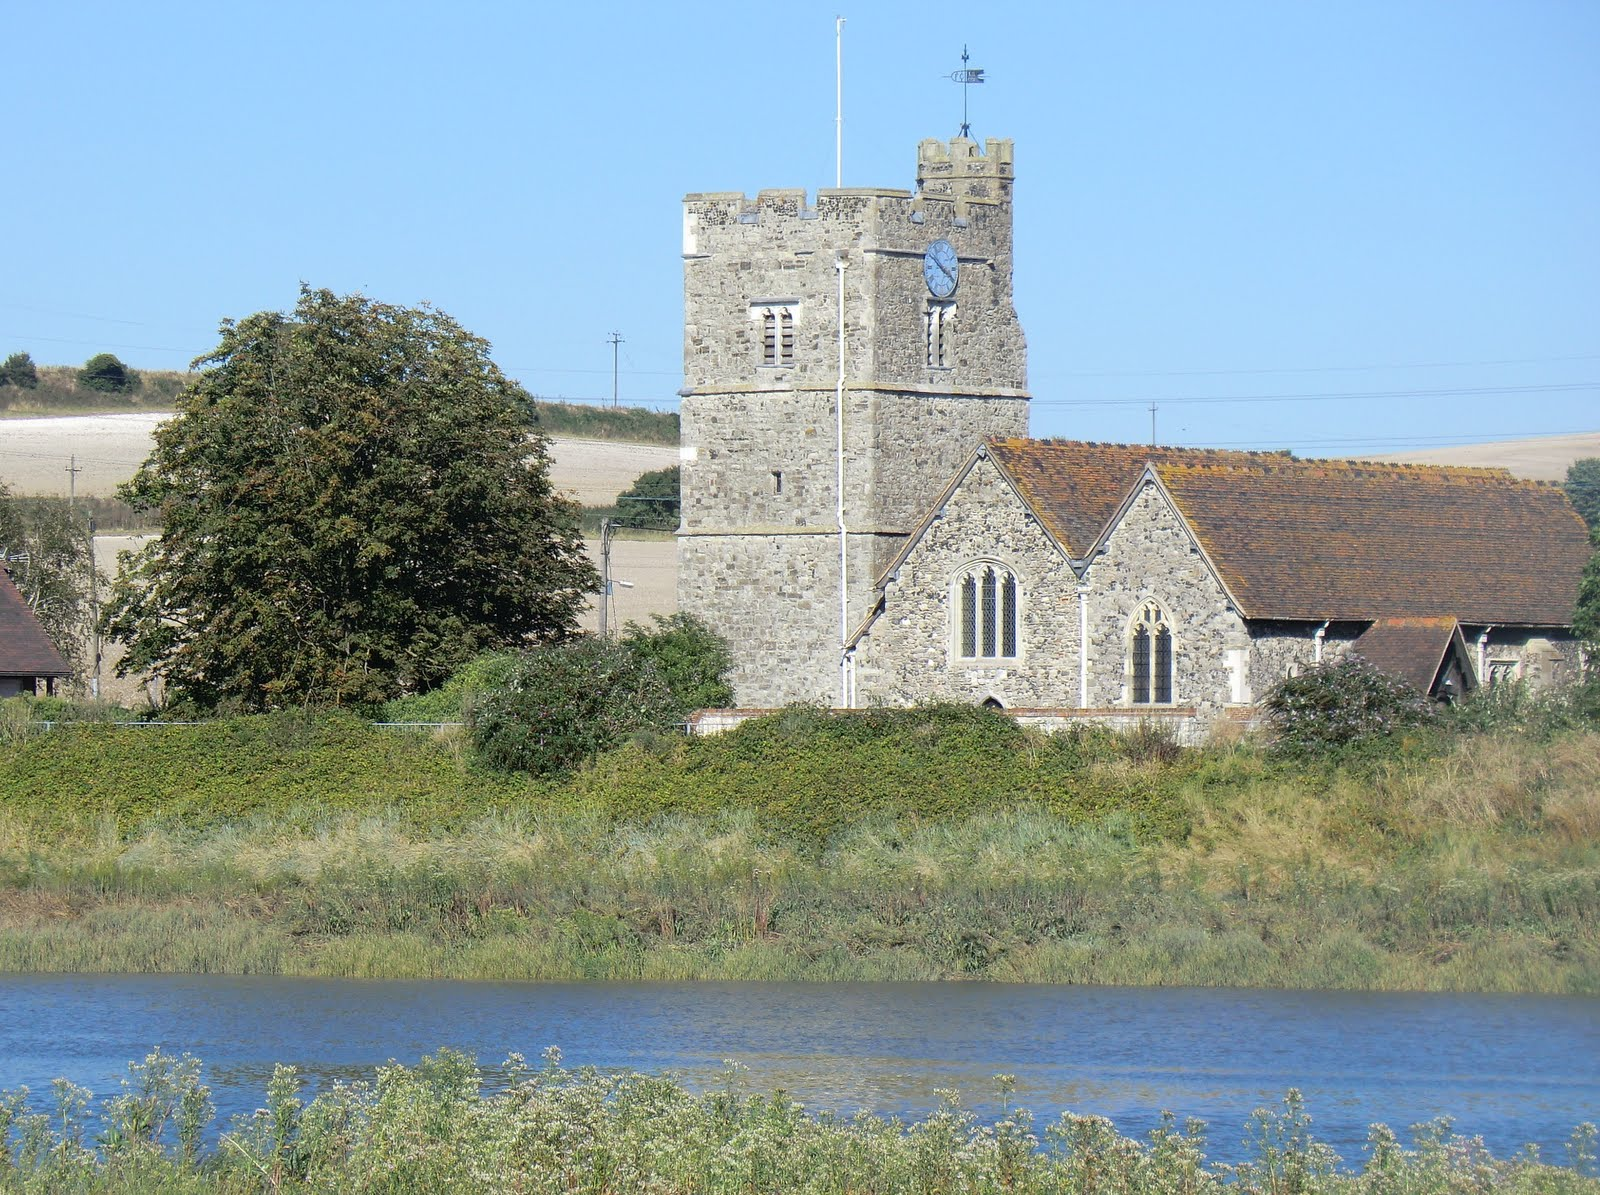 CIMG3943 Wouldham church on the far bank of the River Medway